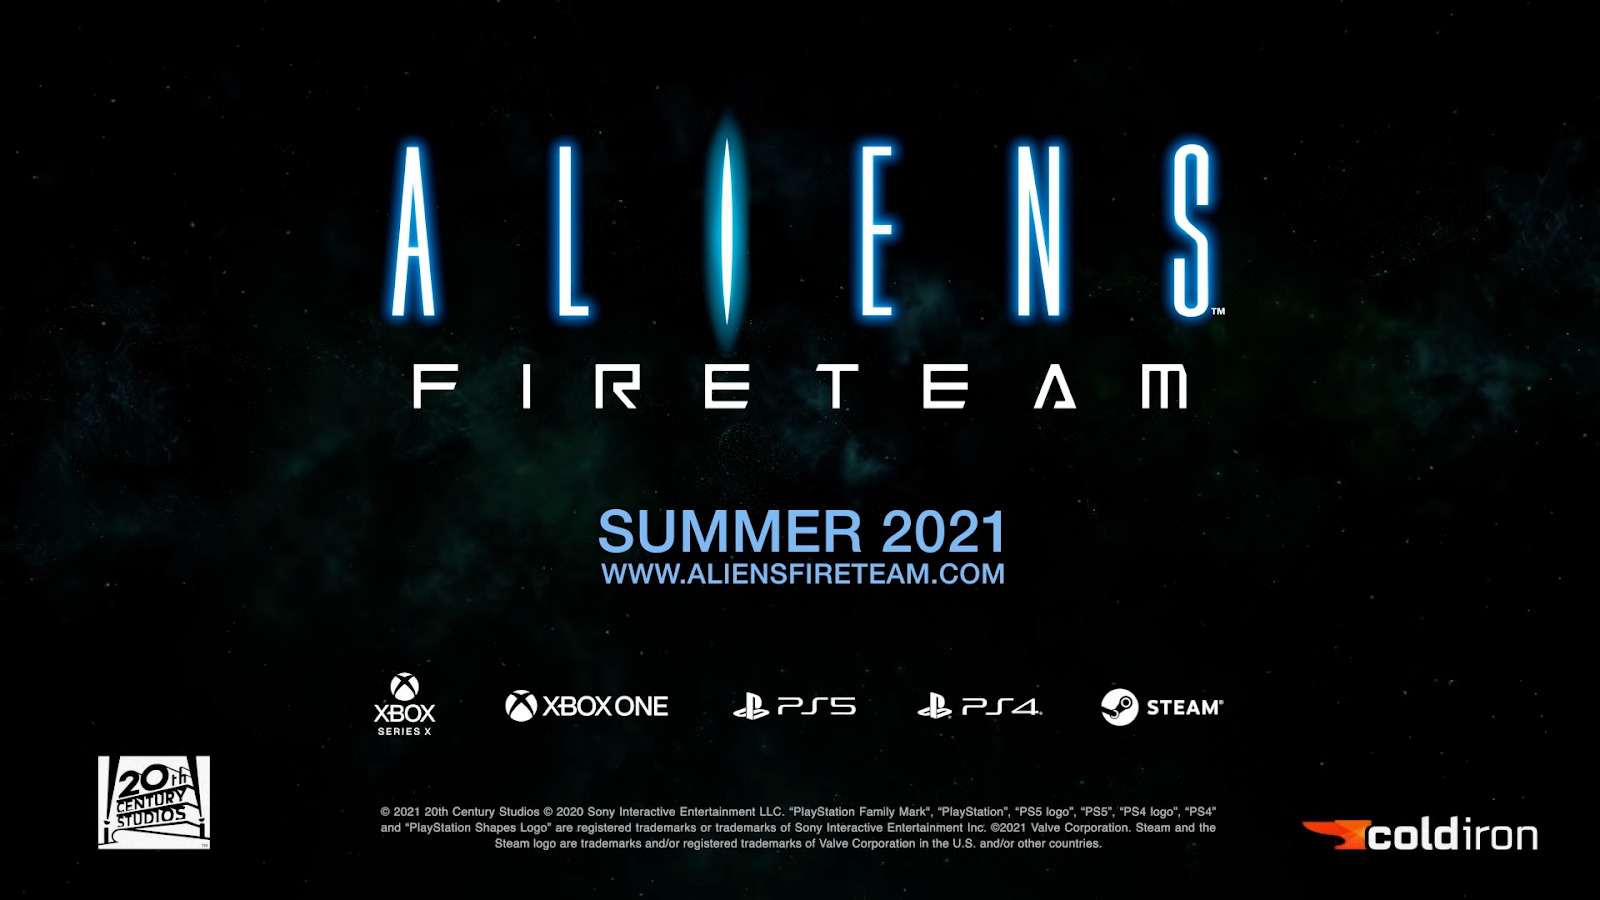 alien action shooter buy aliens firestorm buy game code alien game key fireteam xenomorph compare price aliens fireteam